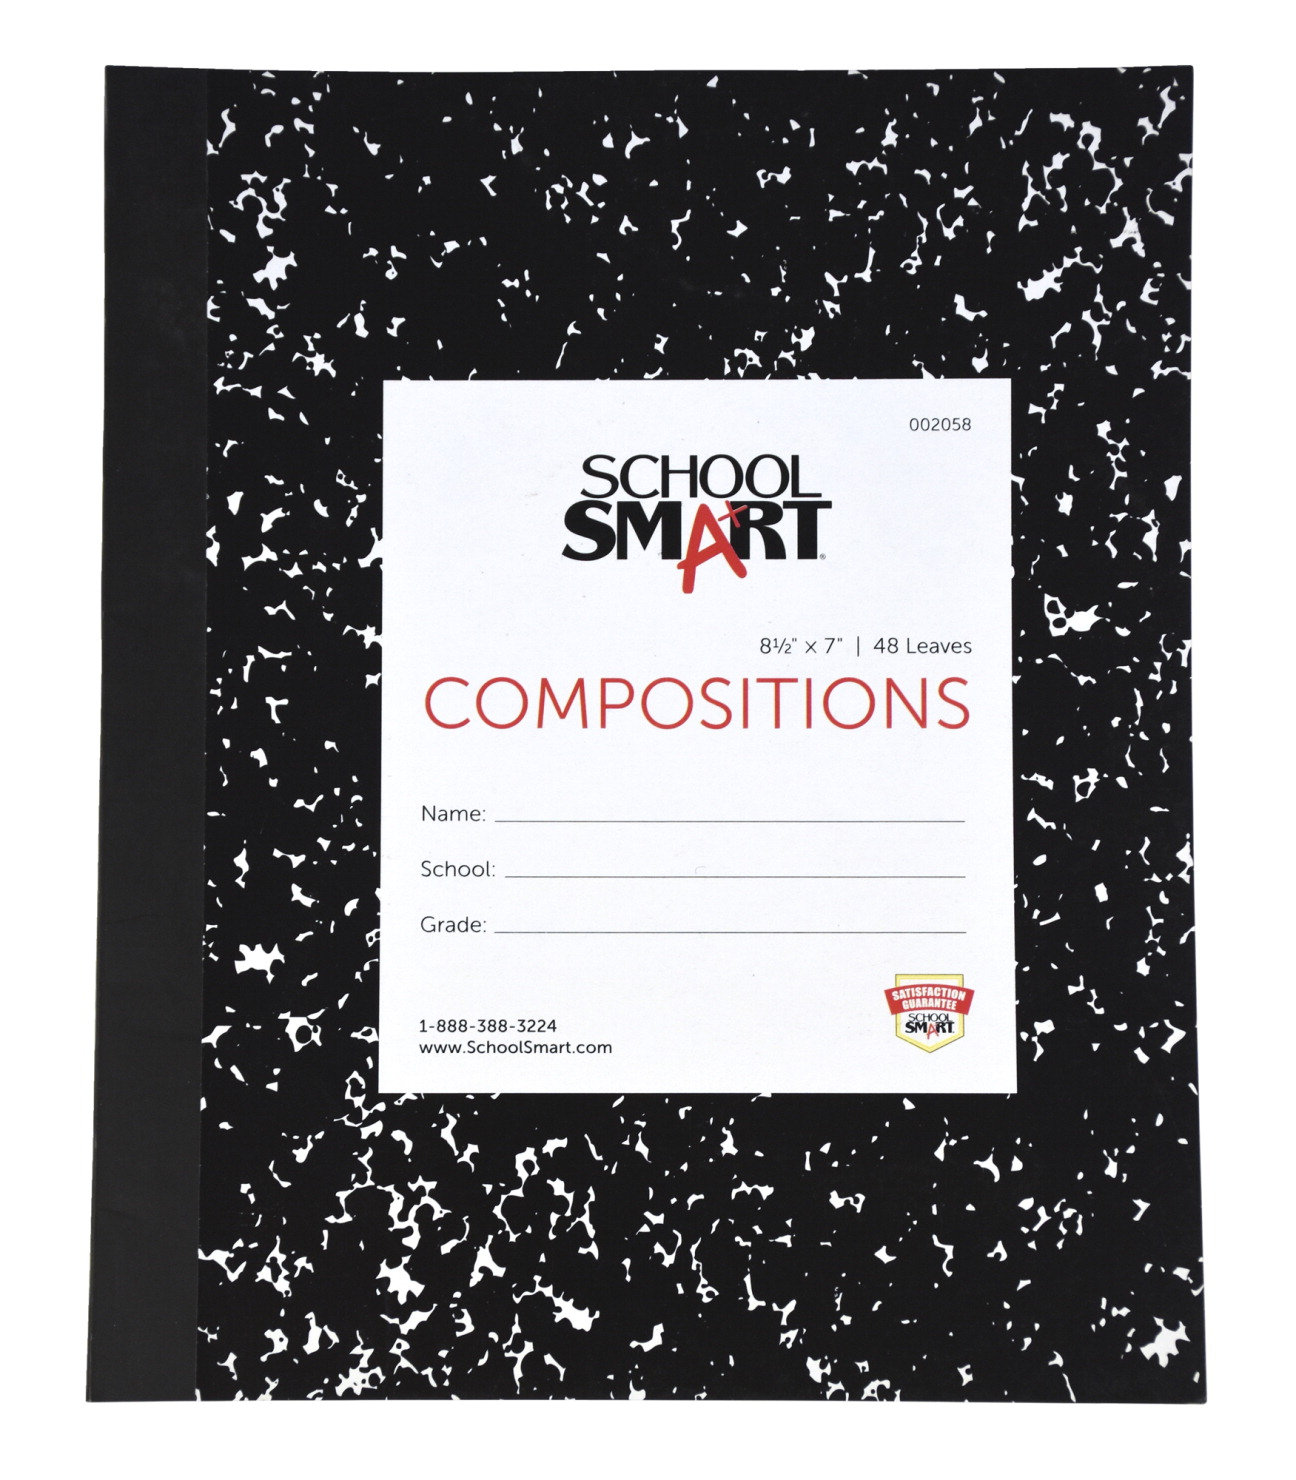 School Smart Flexible Cover Ruled Composition Book, 8-1/2 x 7 Inches, 48 Sheets